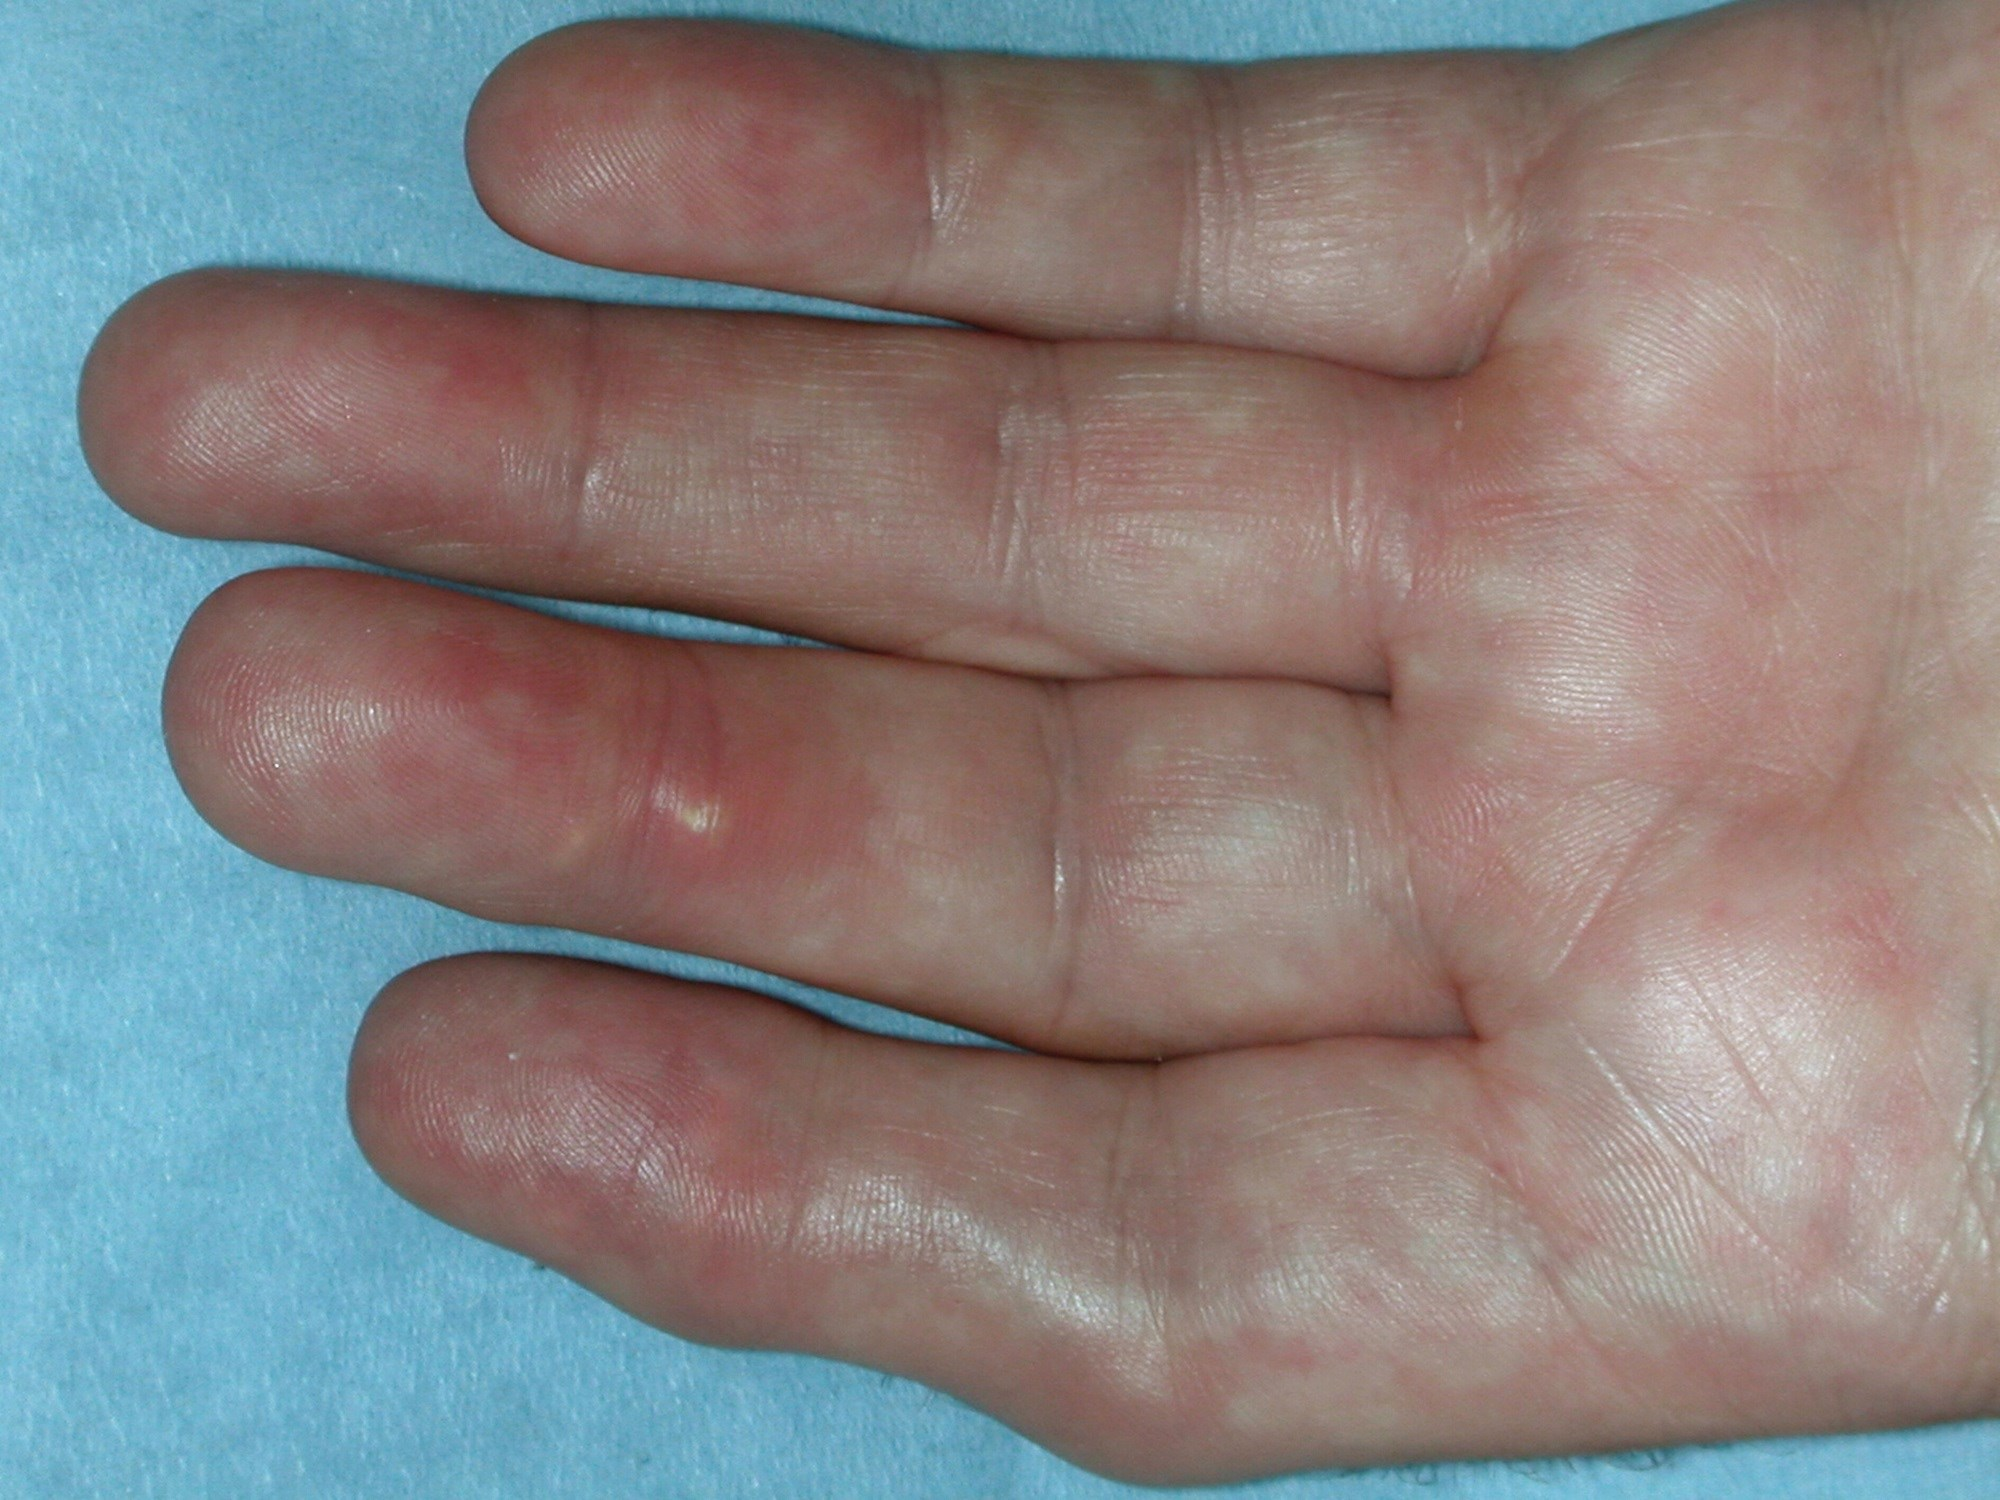 Clinical Gout-Related Benefits Not Demonstrated With Lesinurad Combination Therapy